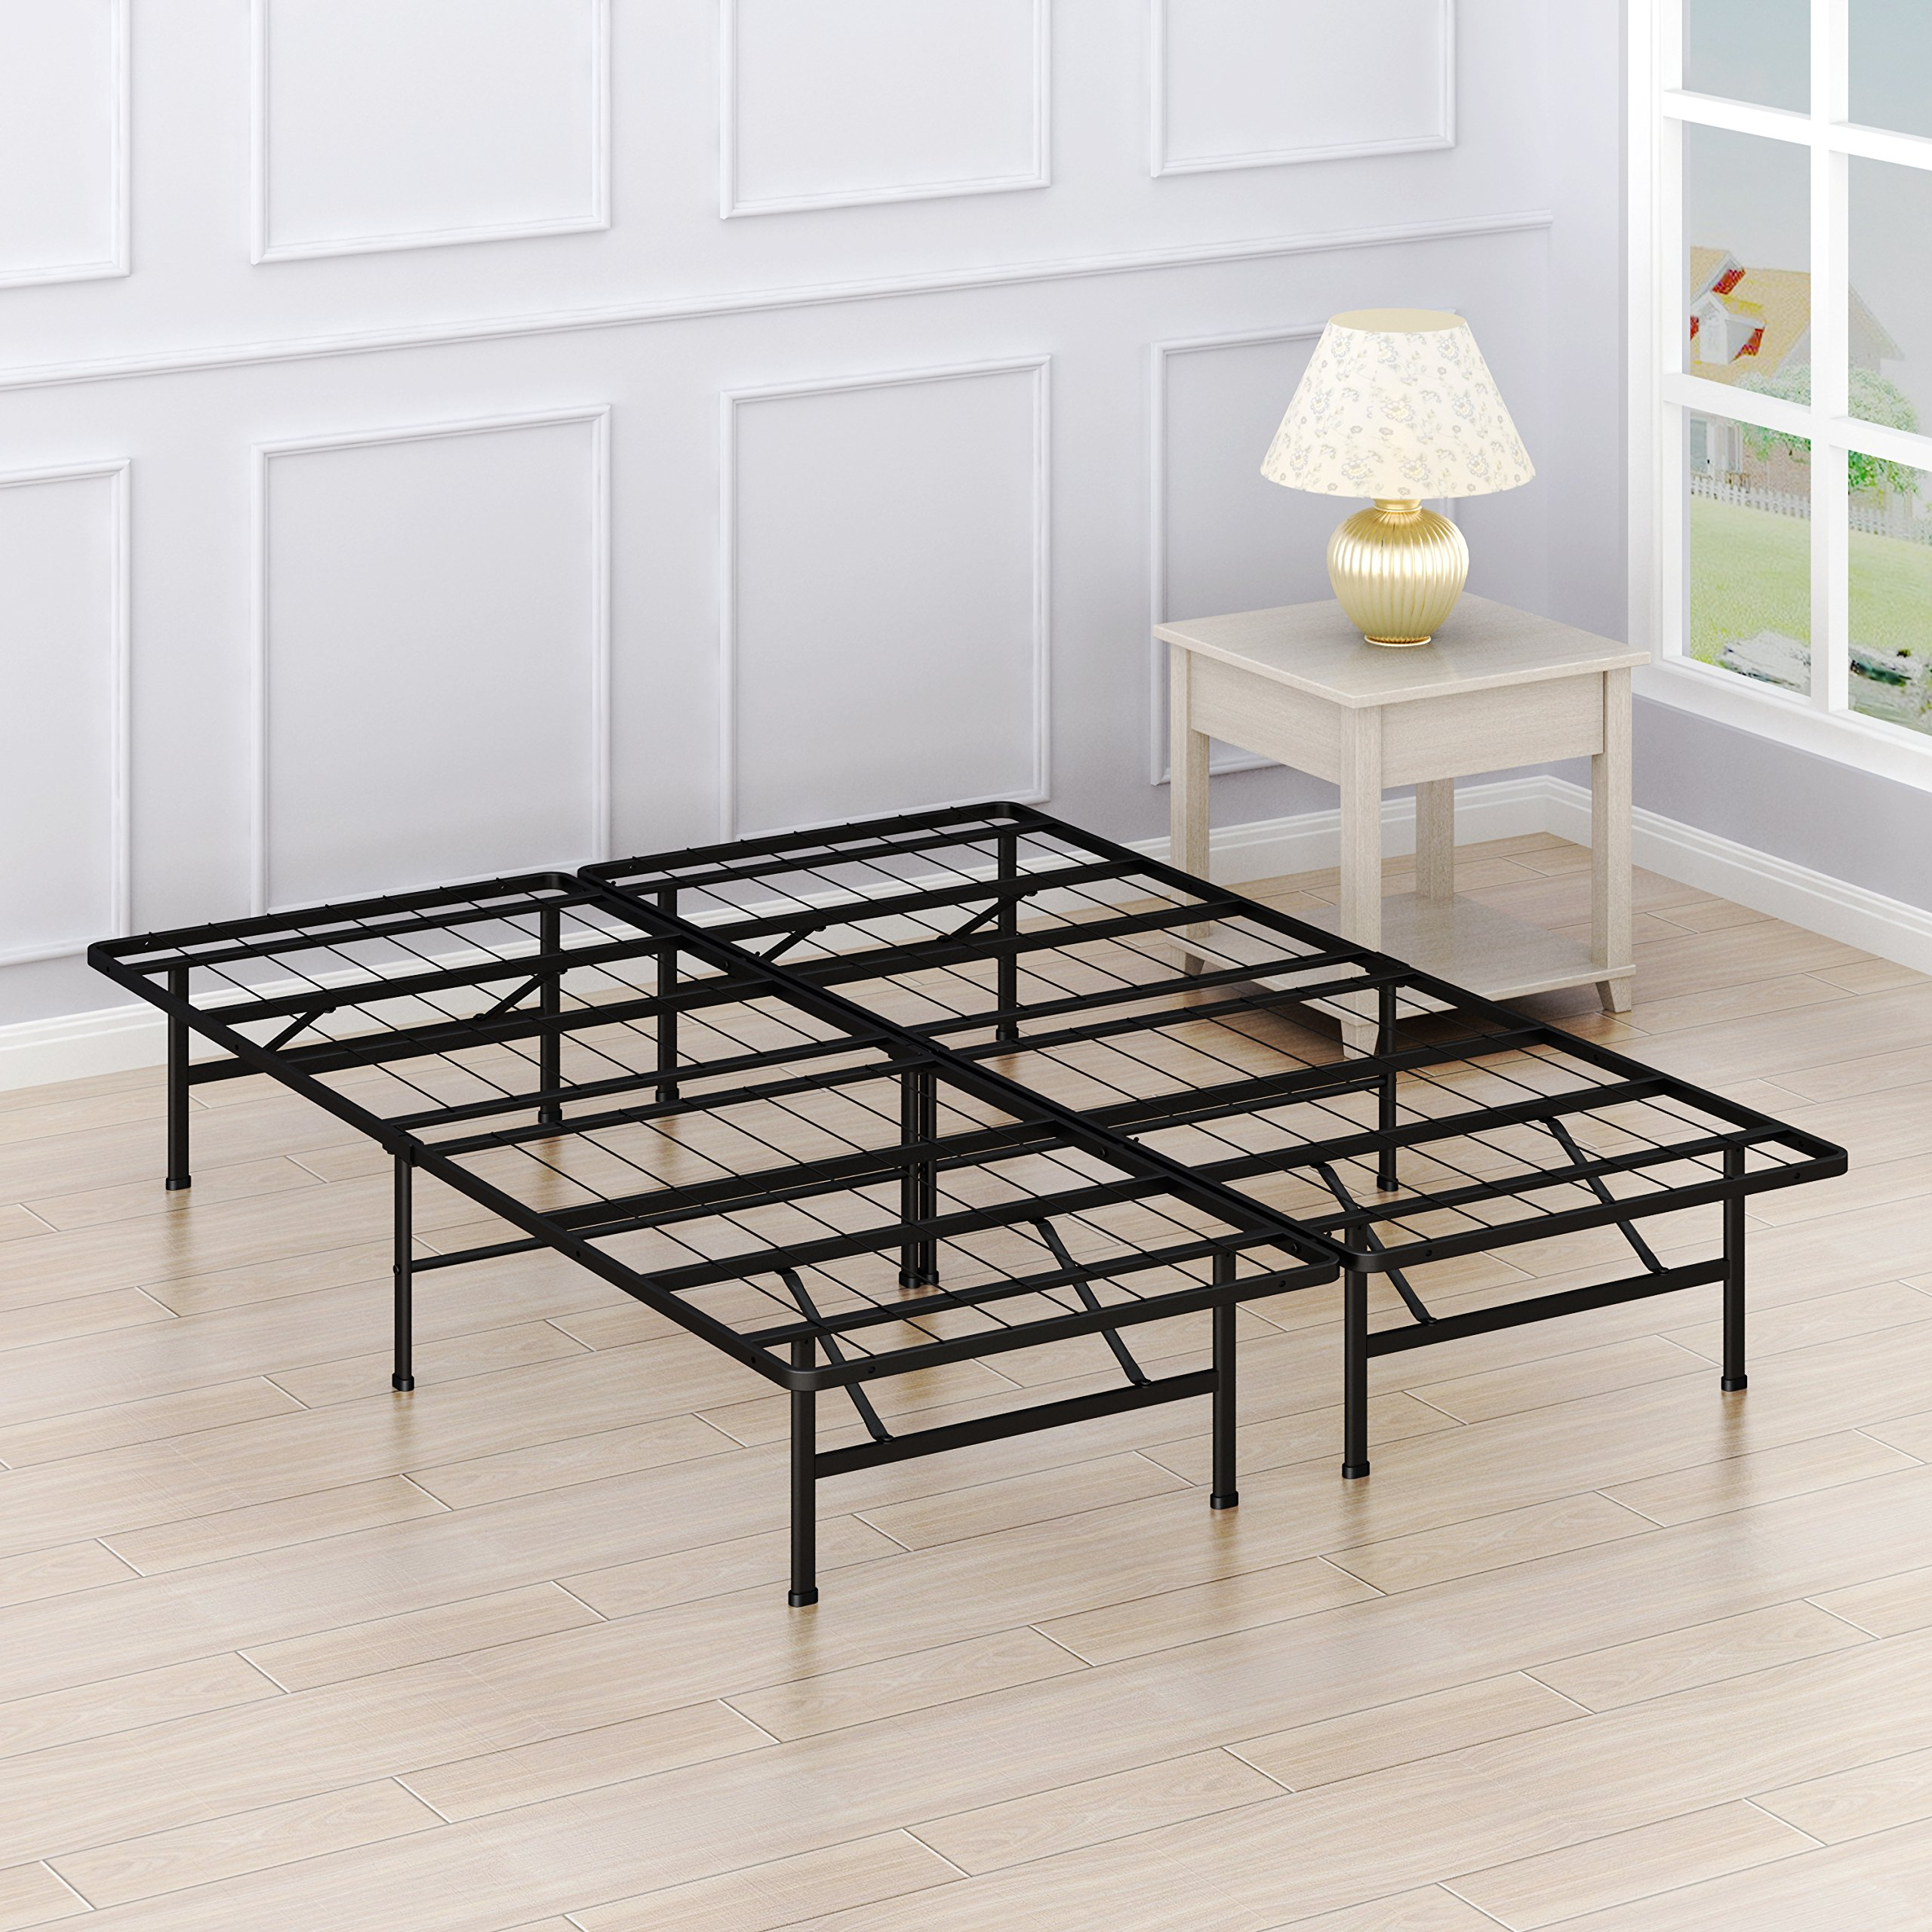 Simple Houseware 14-Inch Queen Size Mattress Foundation Platform Bed Frame, Queen by Simple Houseware